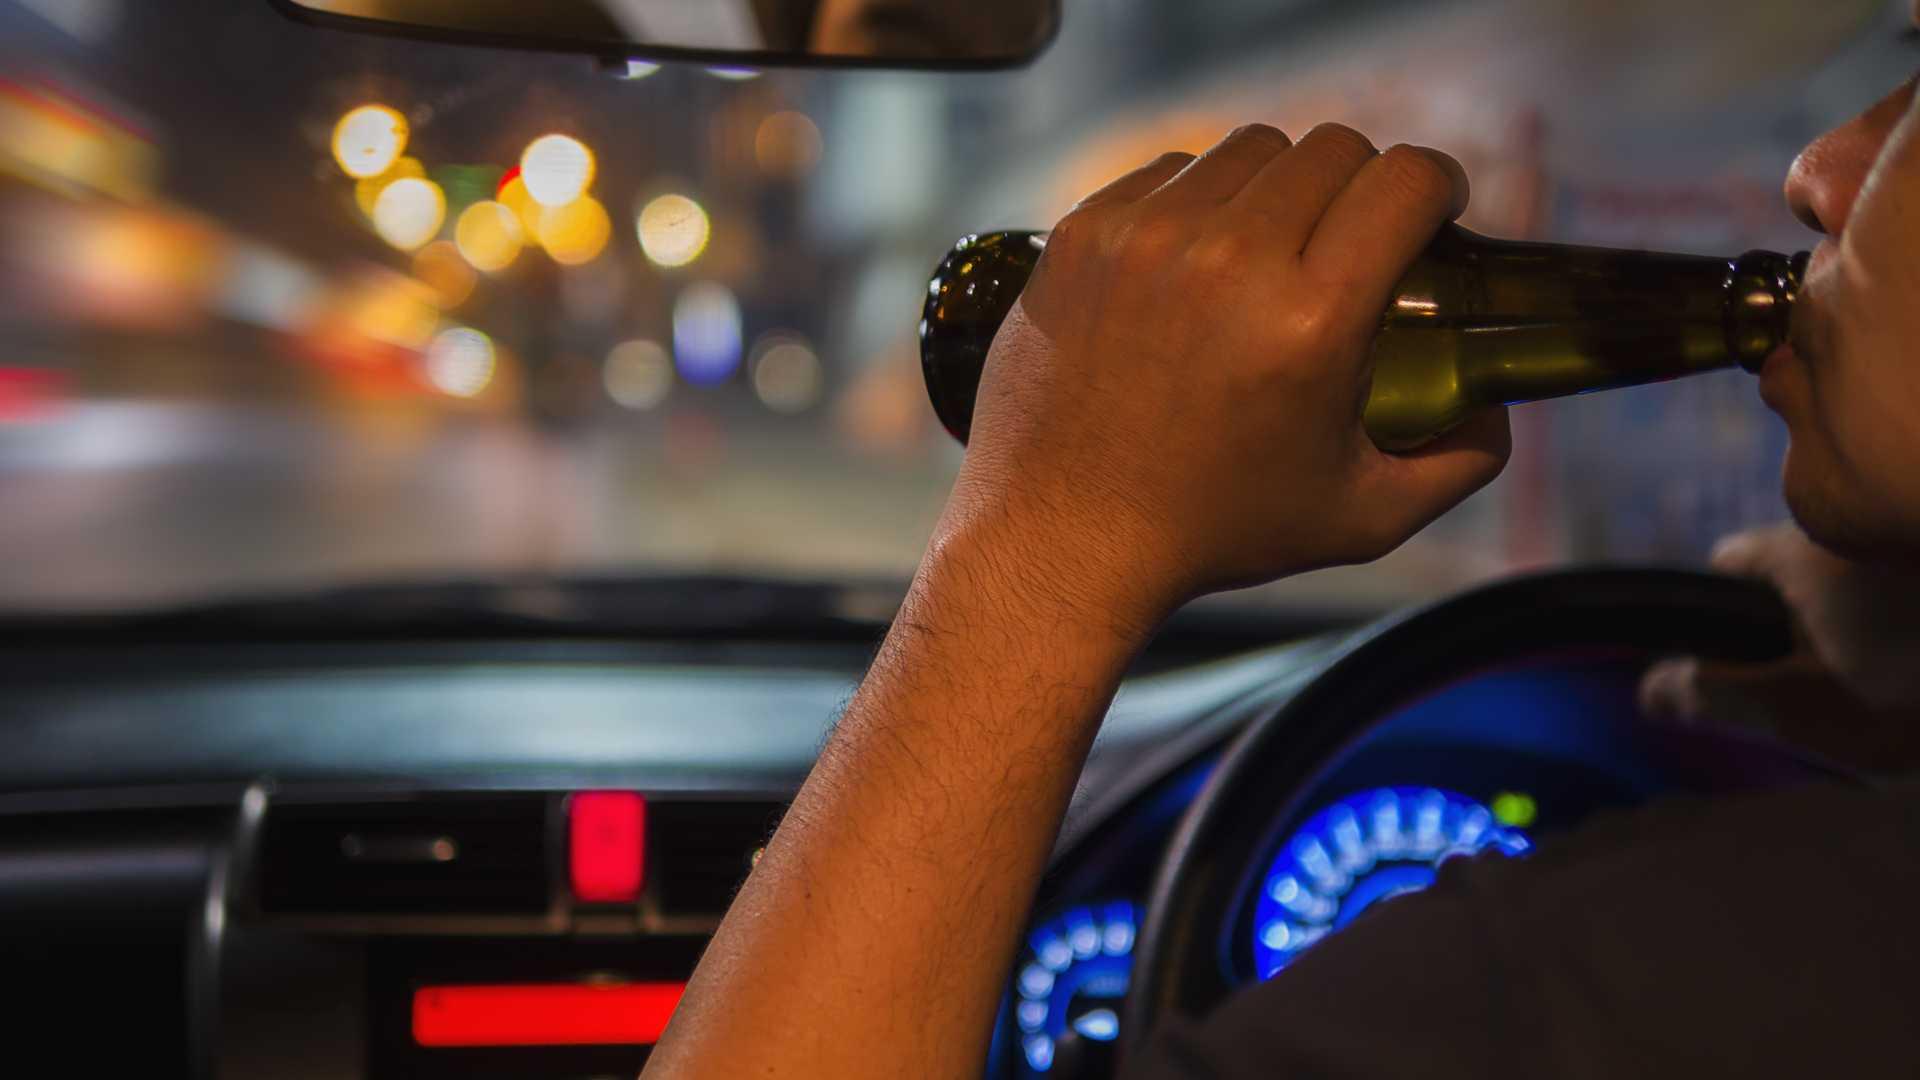 Majority of motorists in-favour of zero-tolerance approach for drink drivers